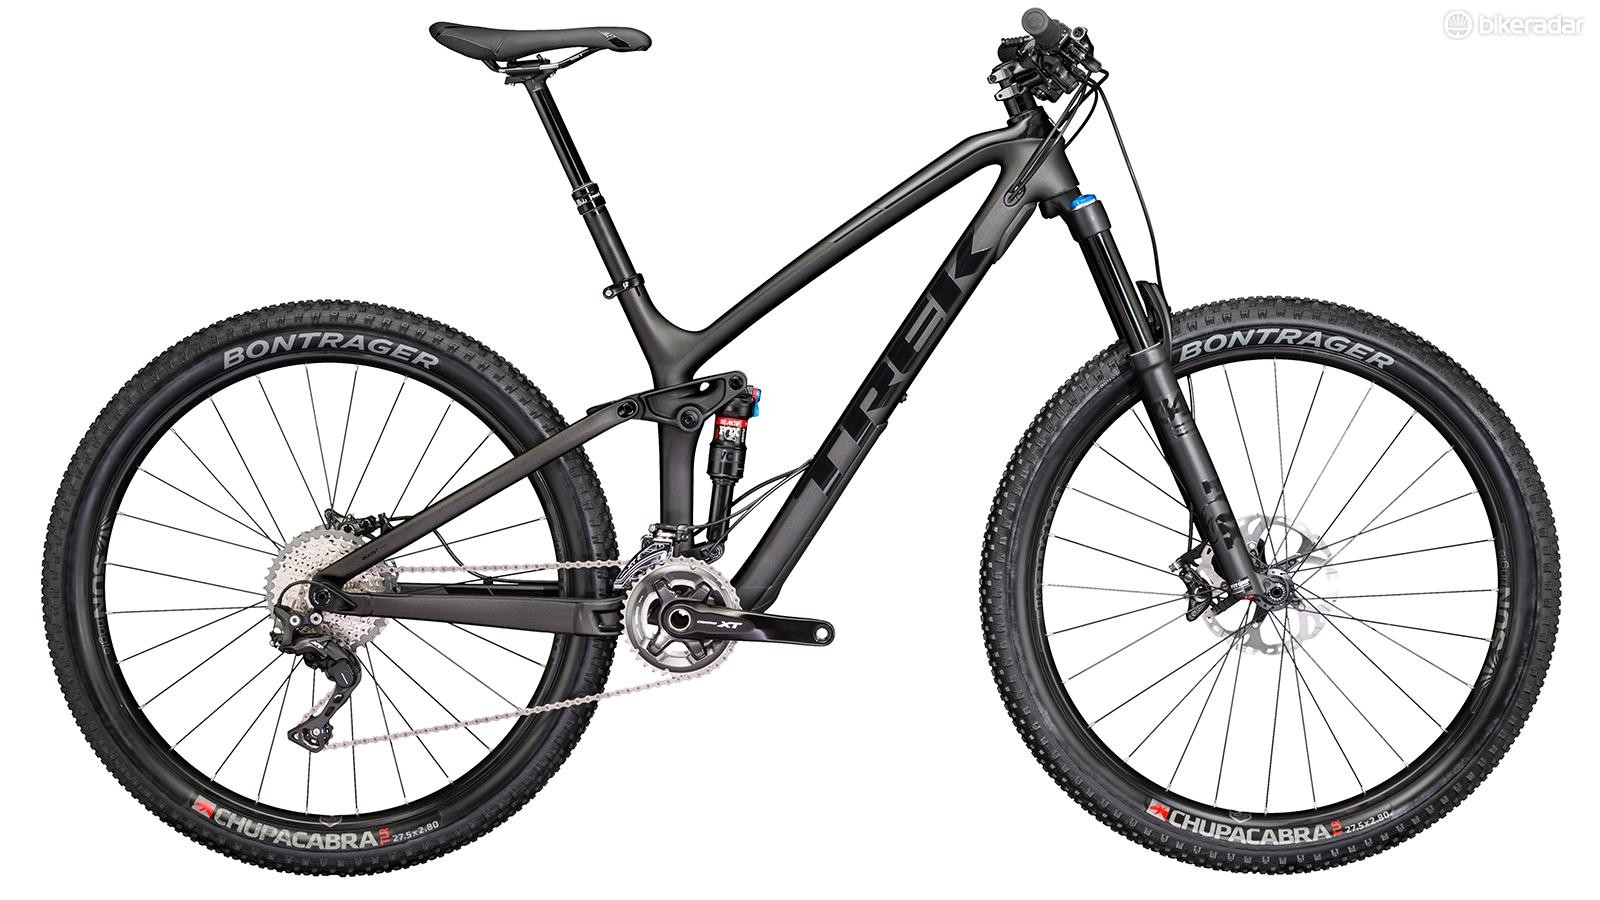 The Trek Fuel EX 9.8 27.5 Plus